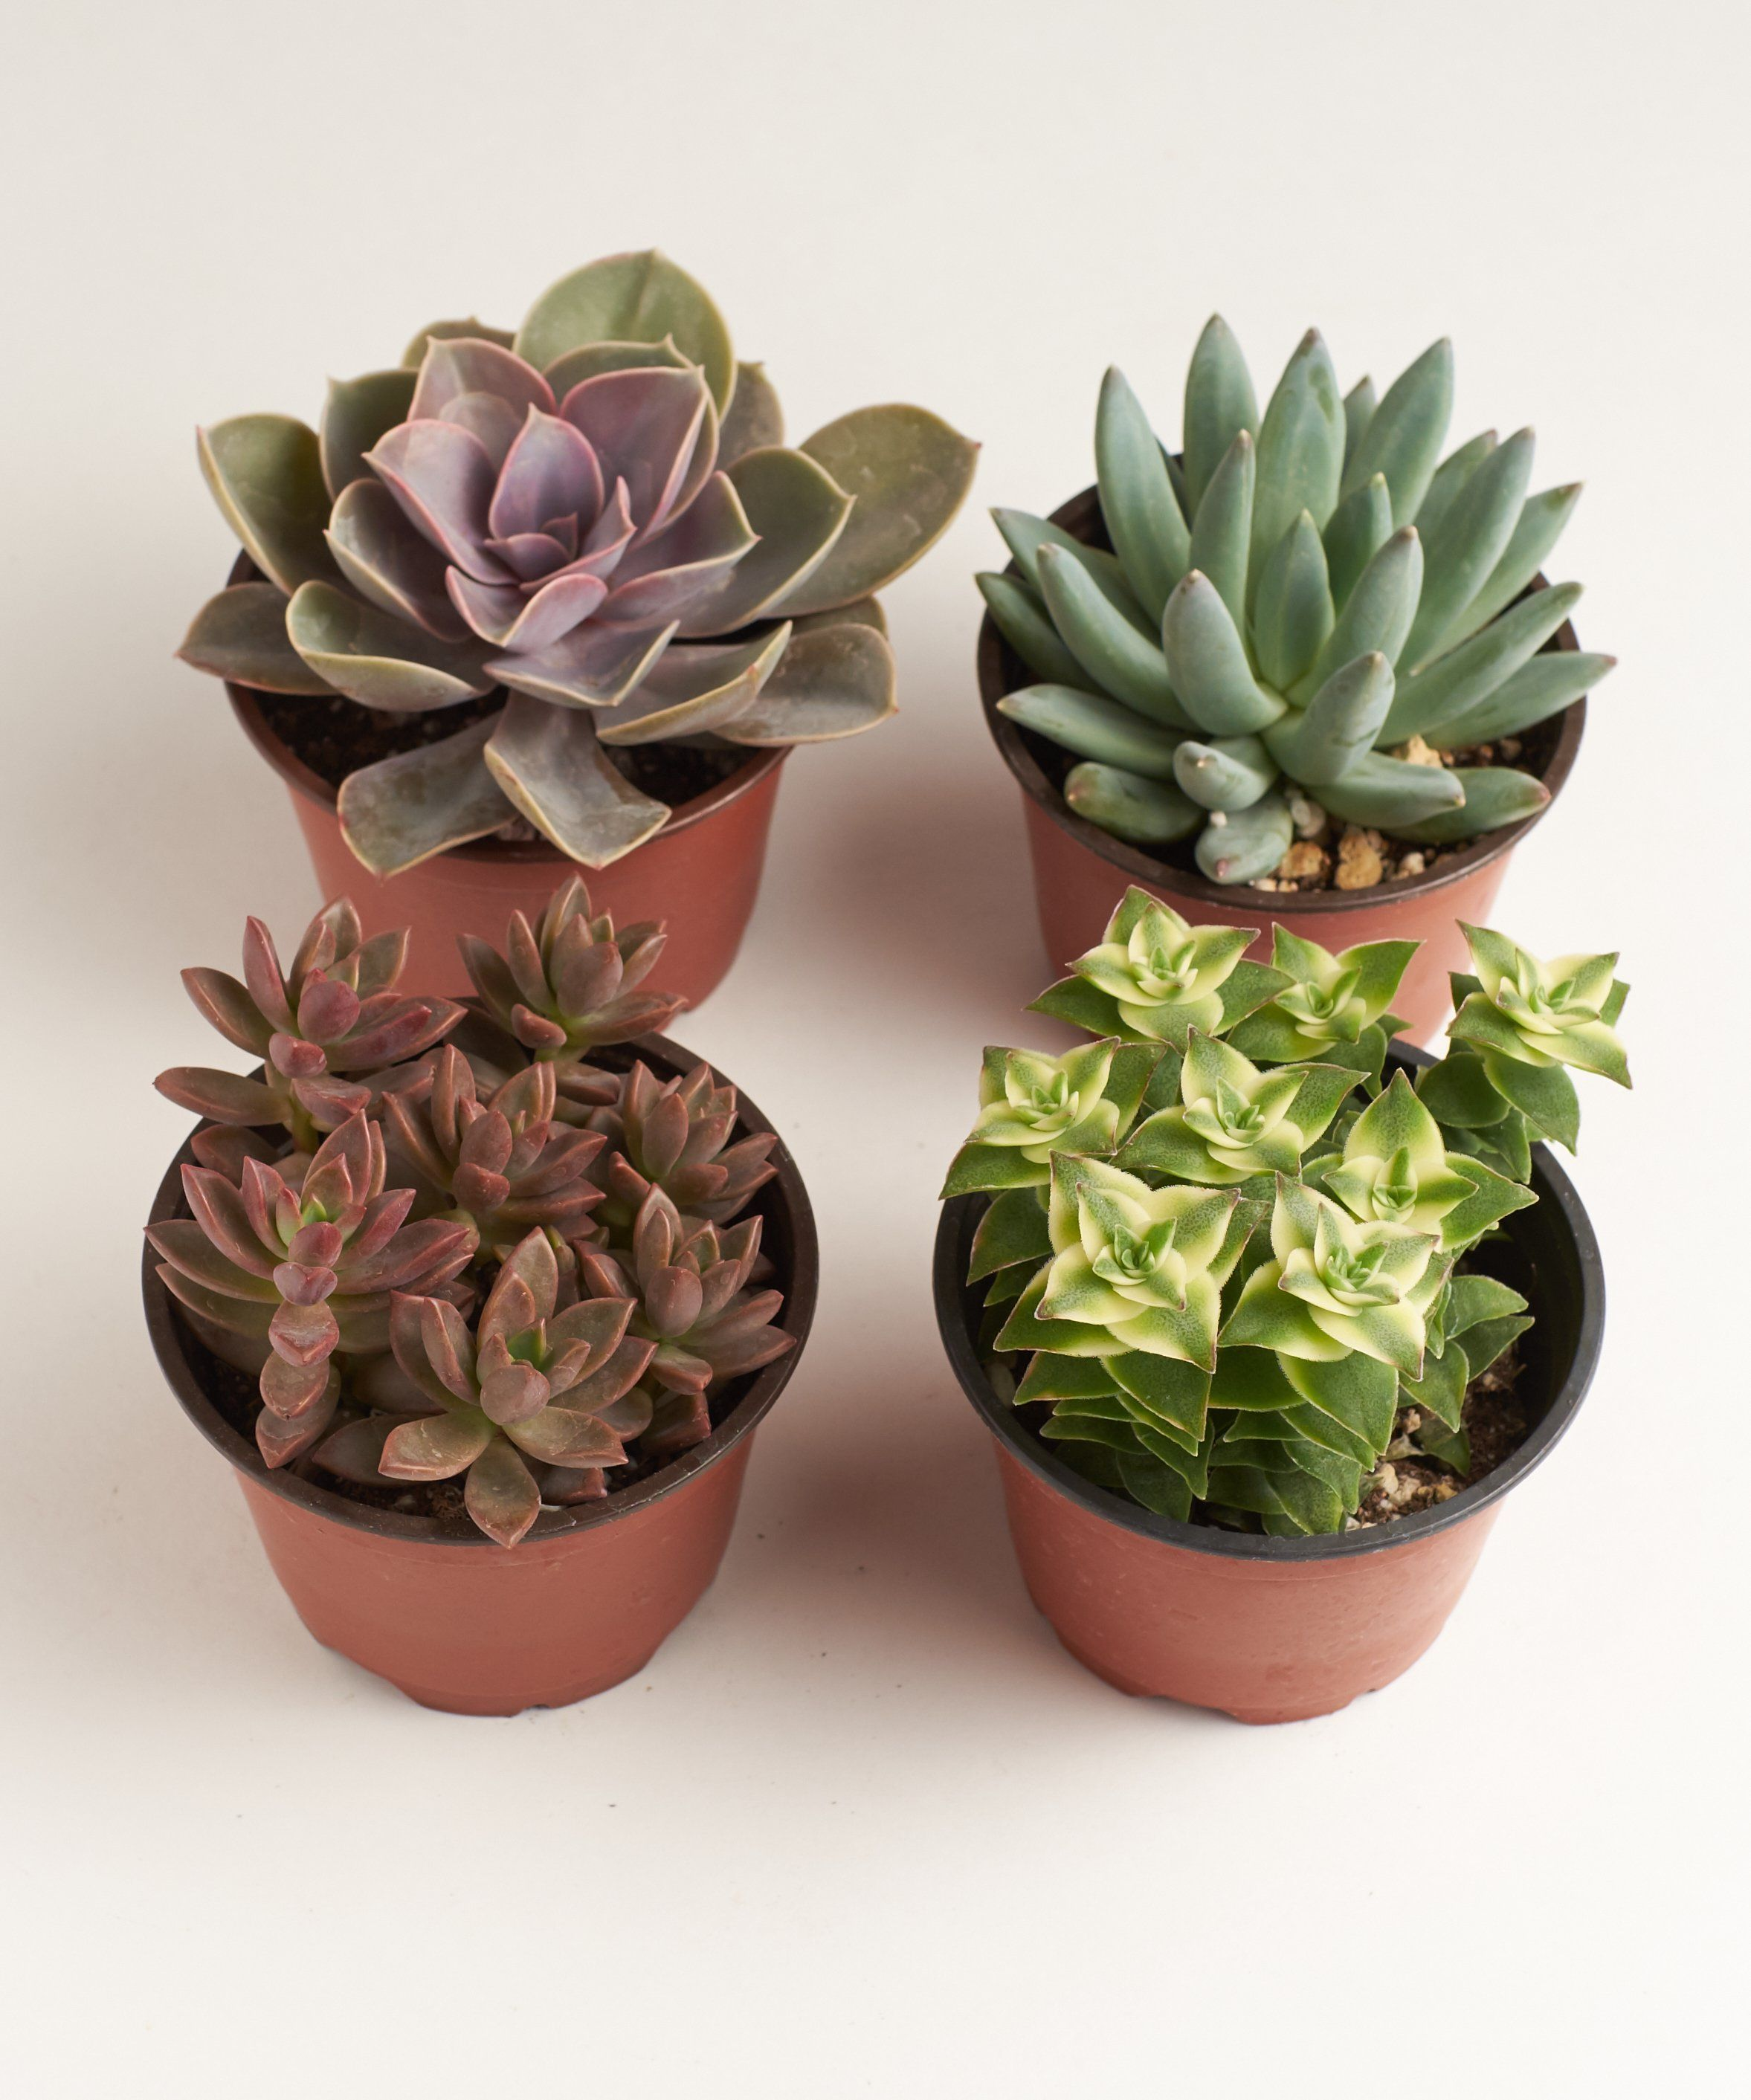 4 Inch Assorted Succulent Collection Succulents Plants Succulent Pots